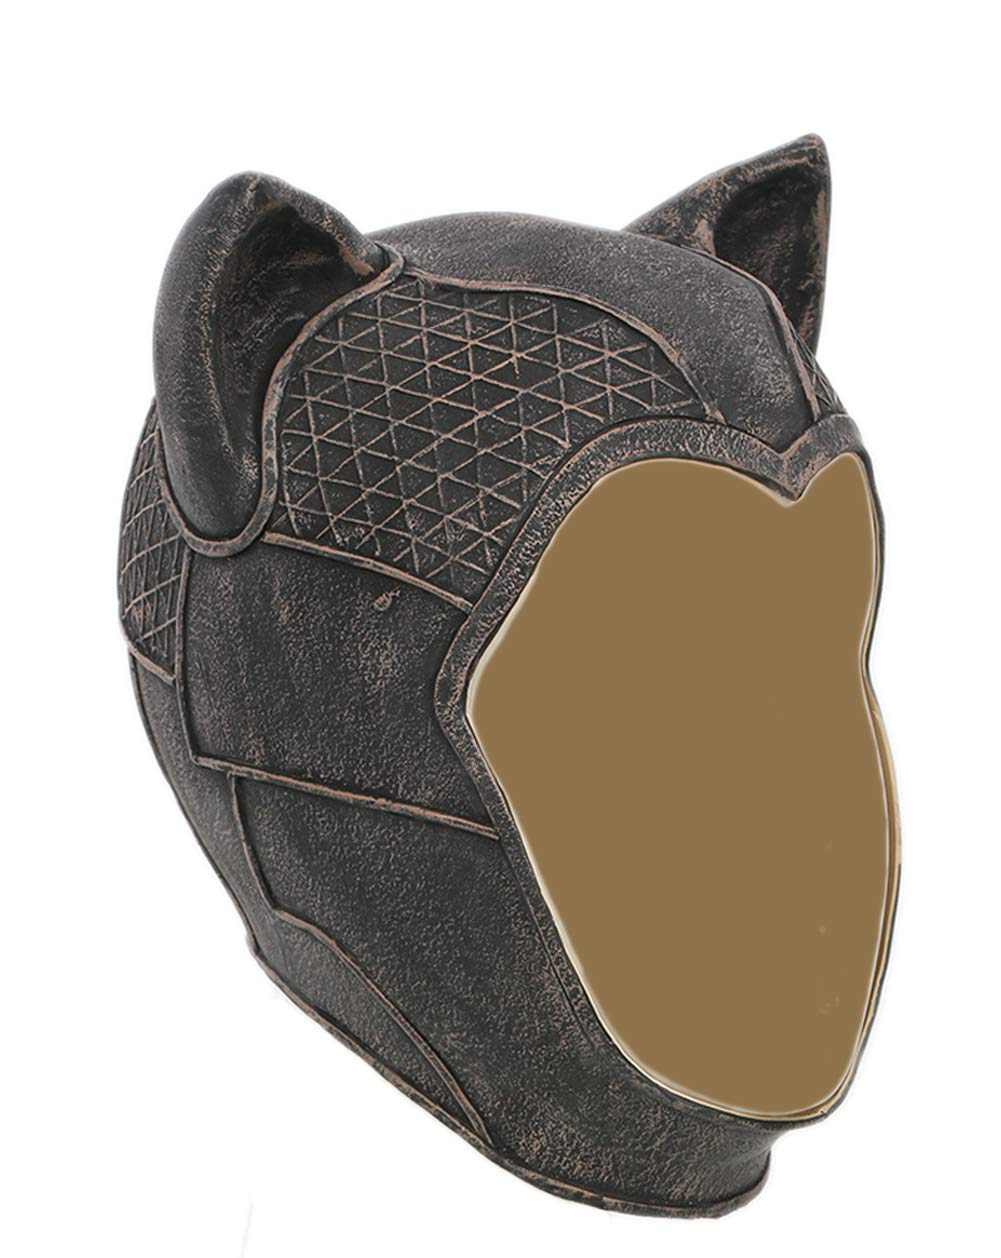 Cat Mask Deluxe Black Latex Women Full Head Cosplay Accessory for Adult Xcoser